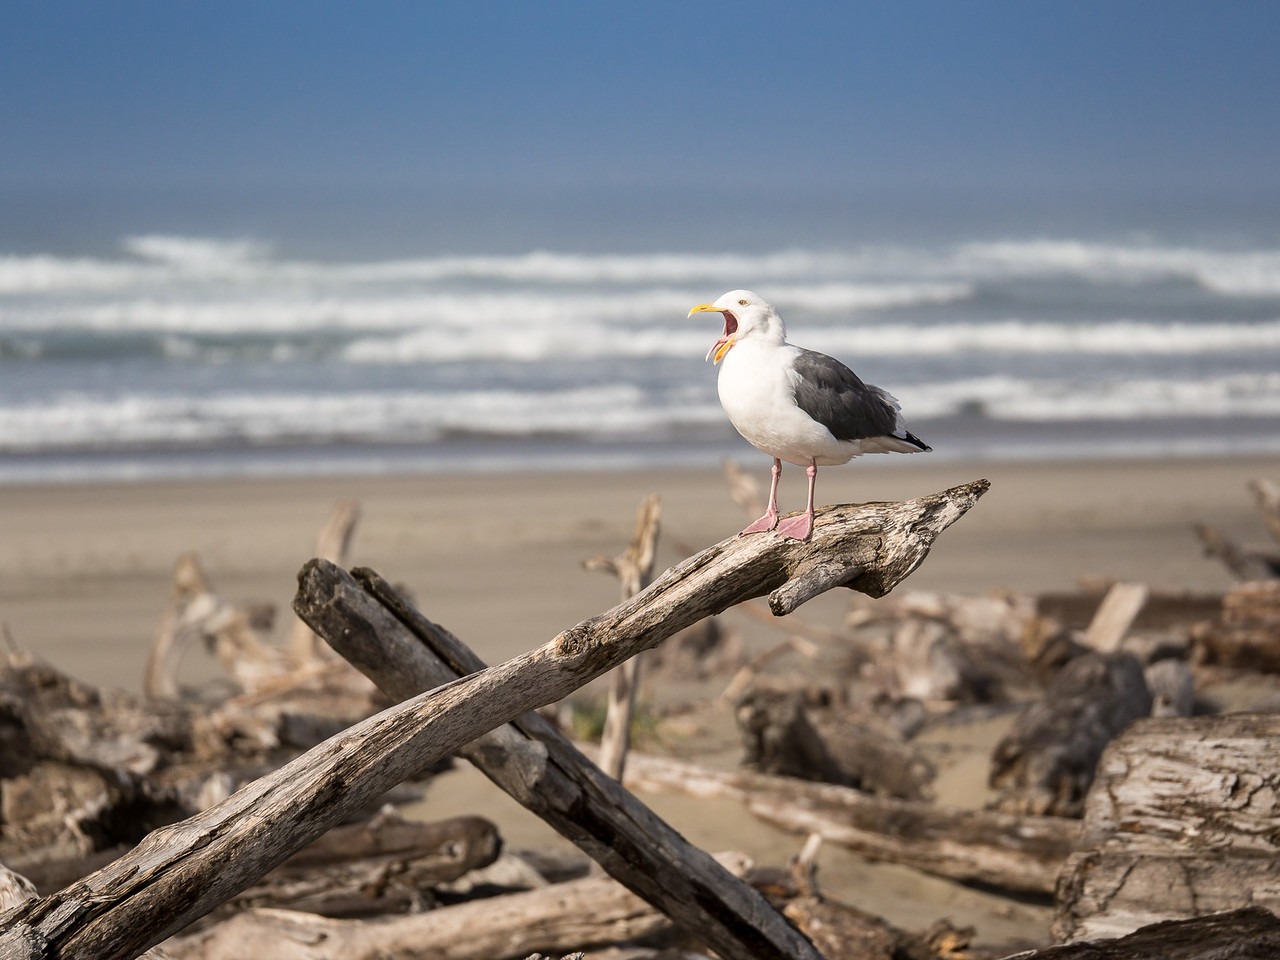 Driftwood and Seagull on the Beach at the Coquille River, Oregon